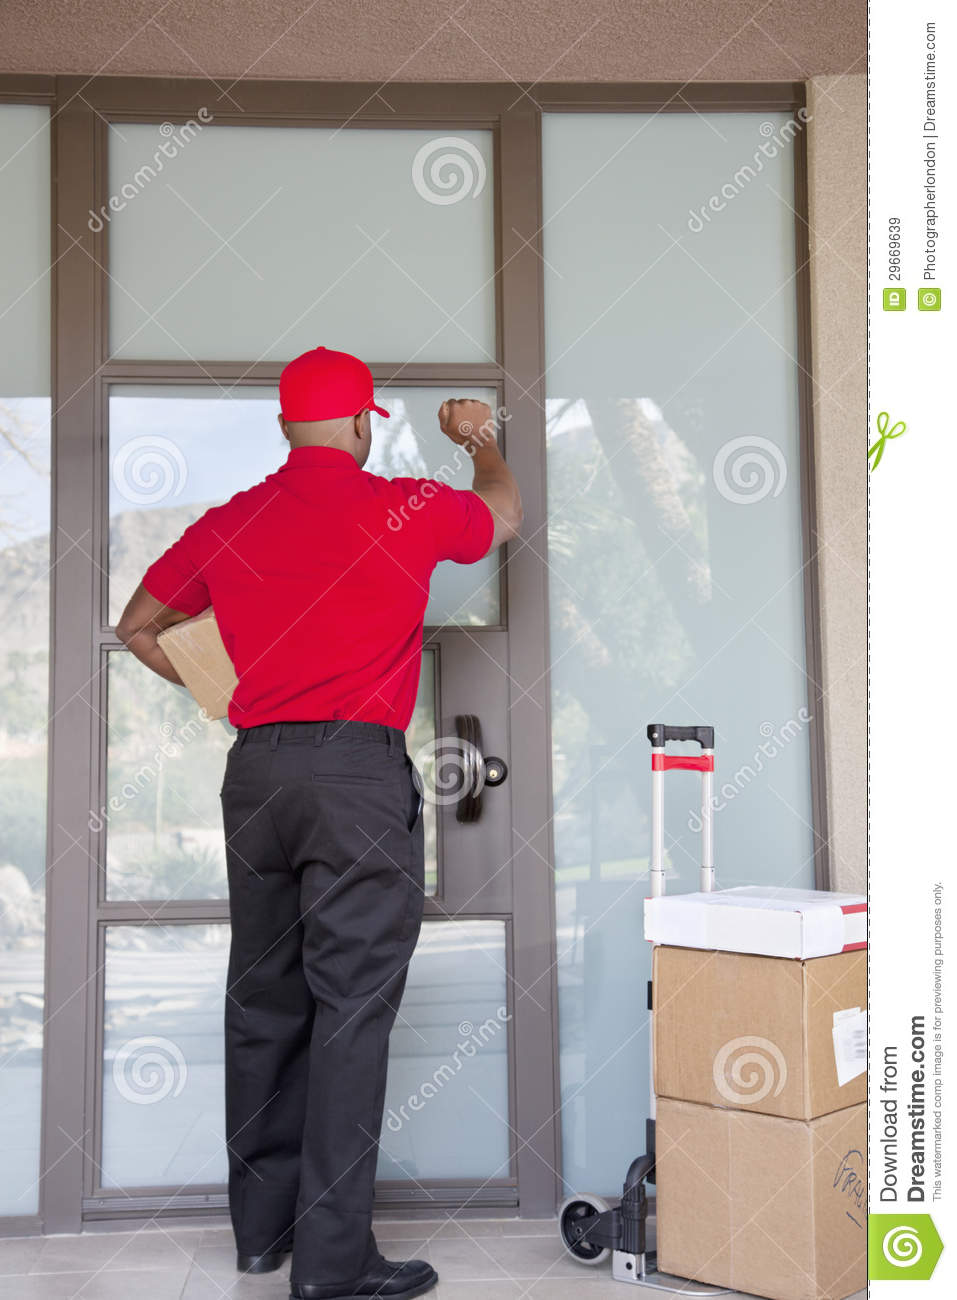 delivery door ... & Rear View Of A Delivery Man Knocking On Door Royalty Free Stock ... Pezcame.Com